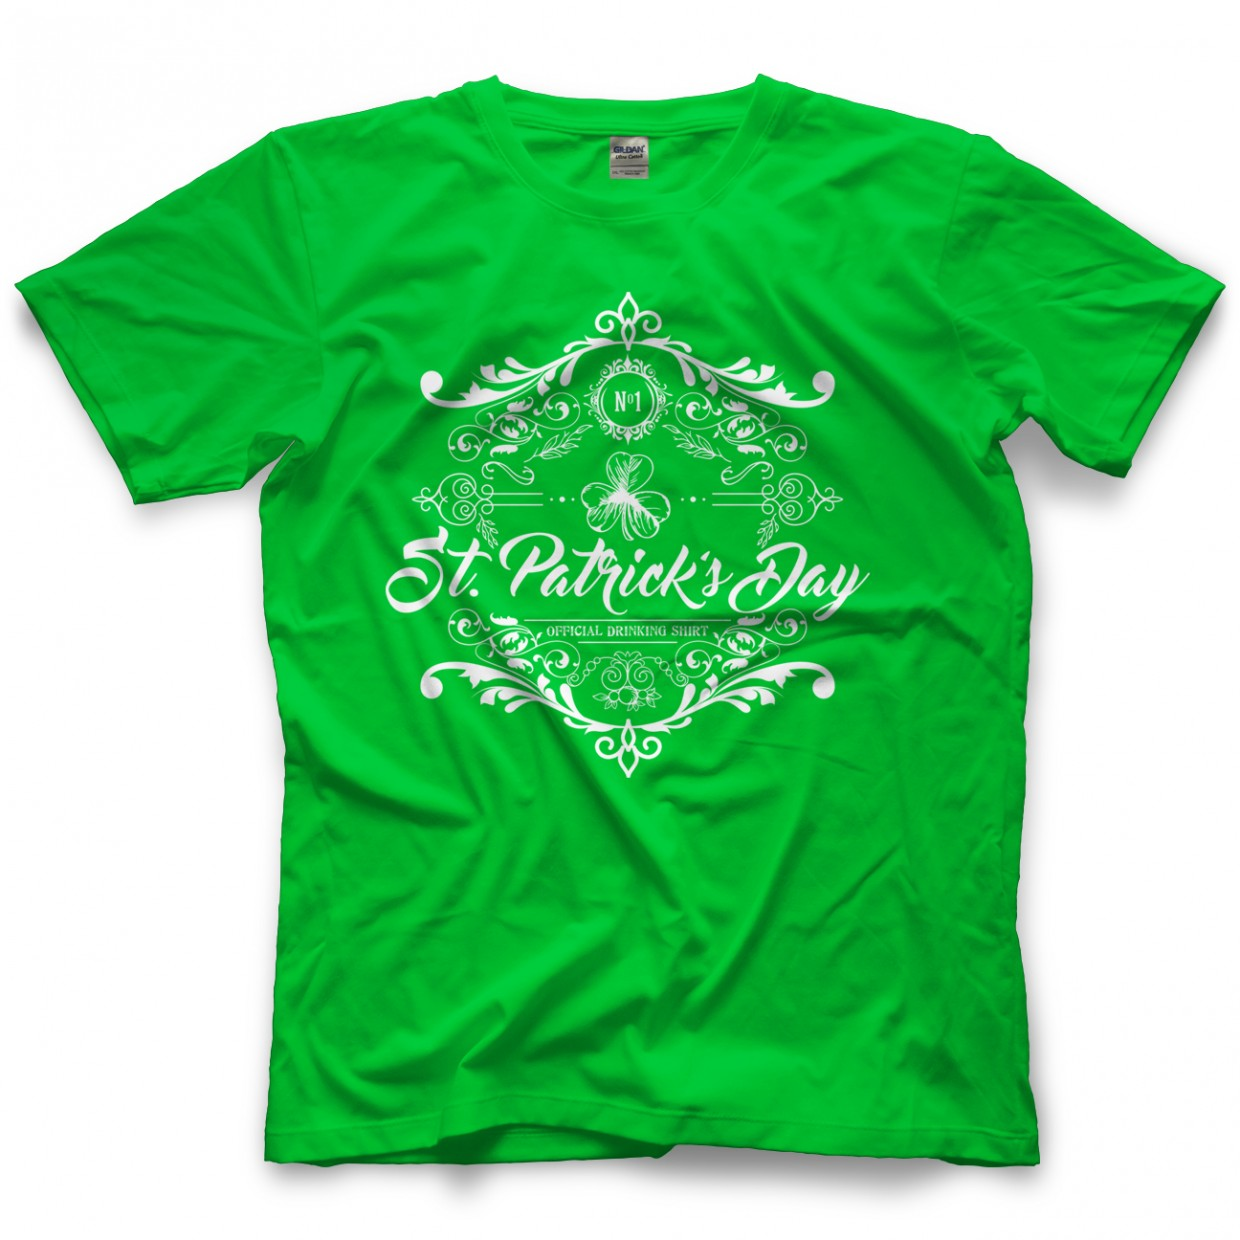 It's Time to Drink St. Patrick's Drinking Shirt - White T-shirt